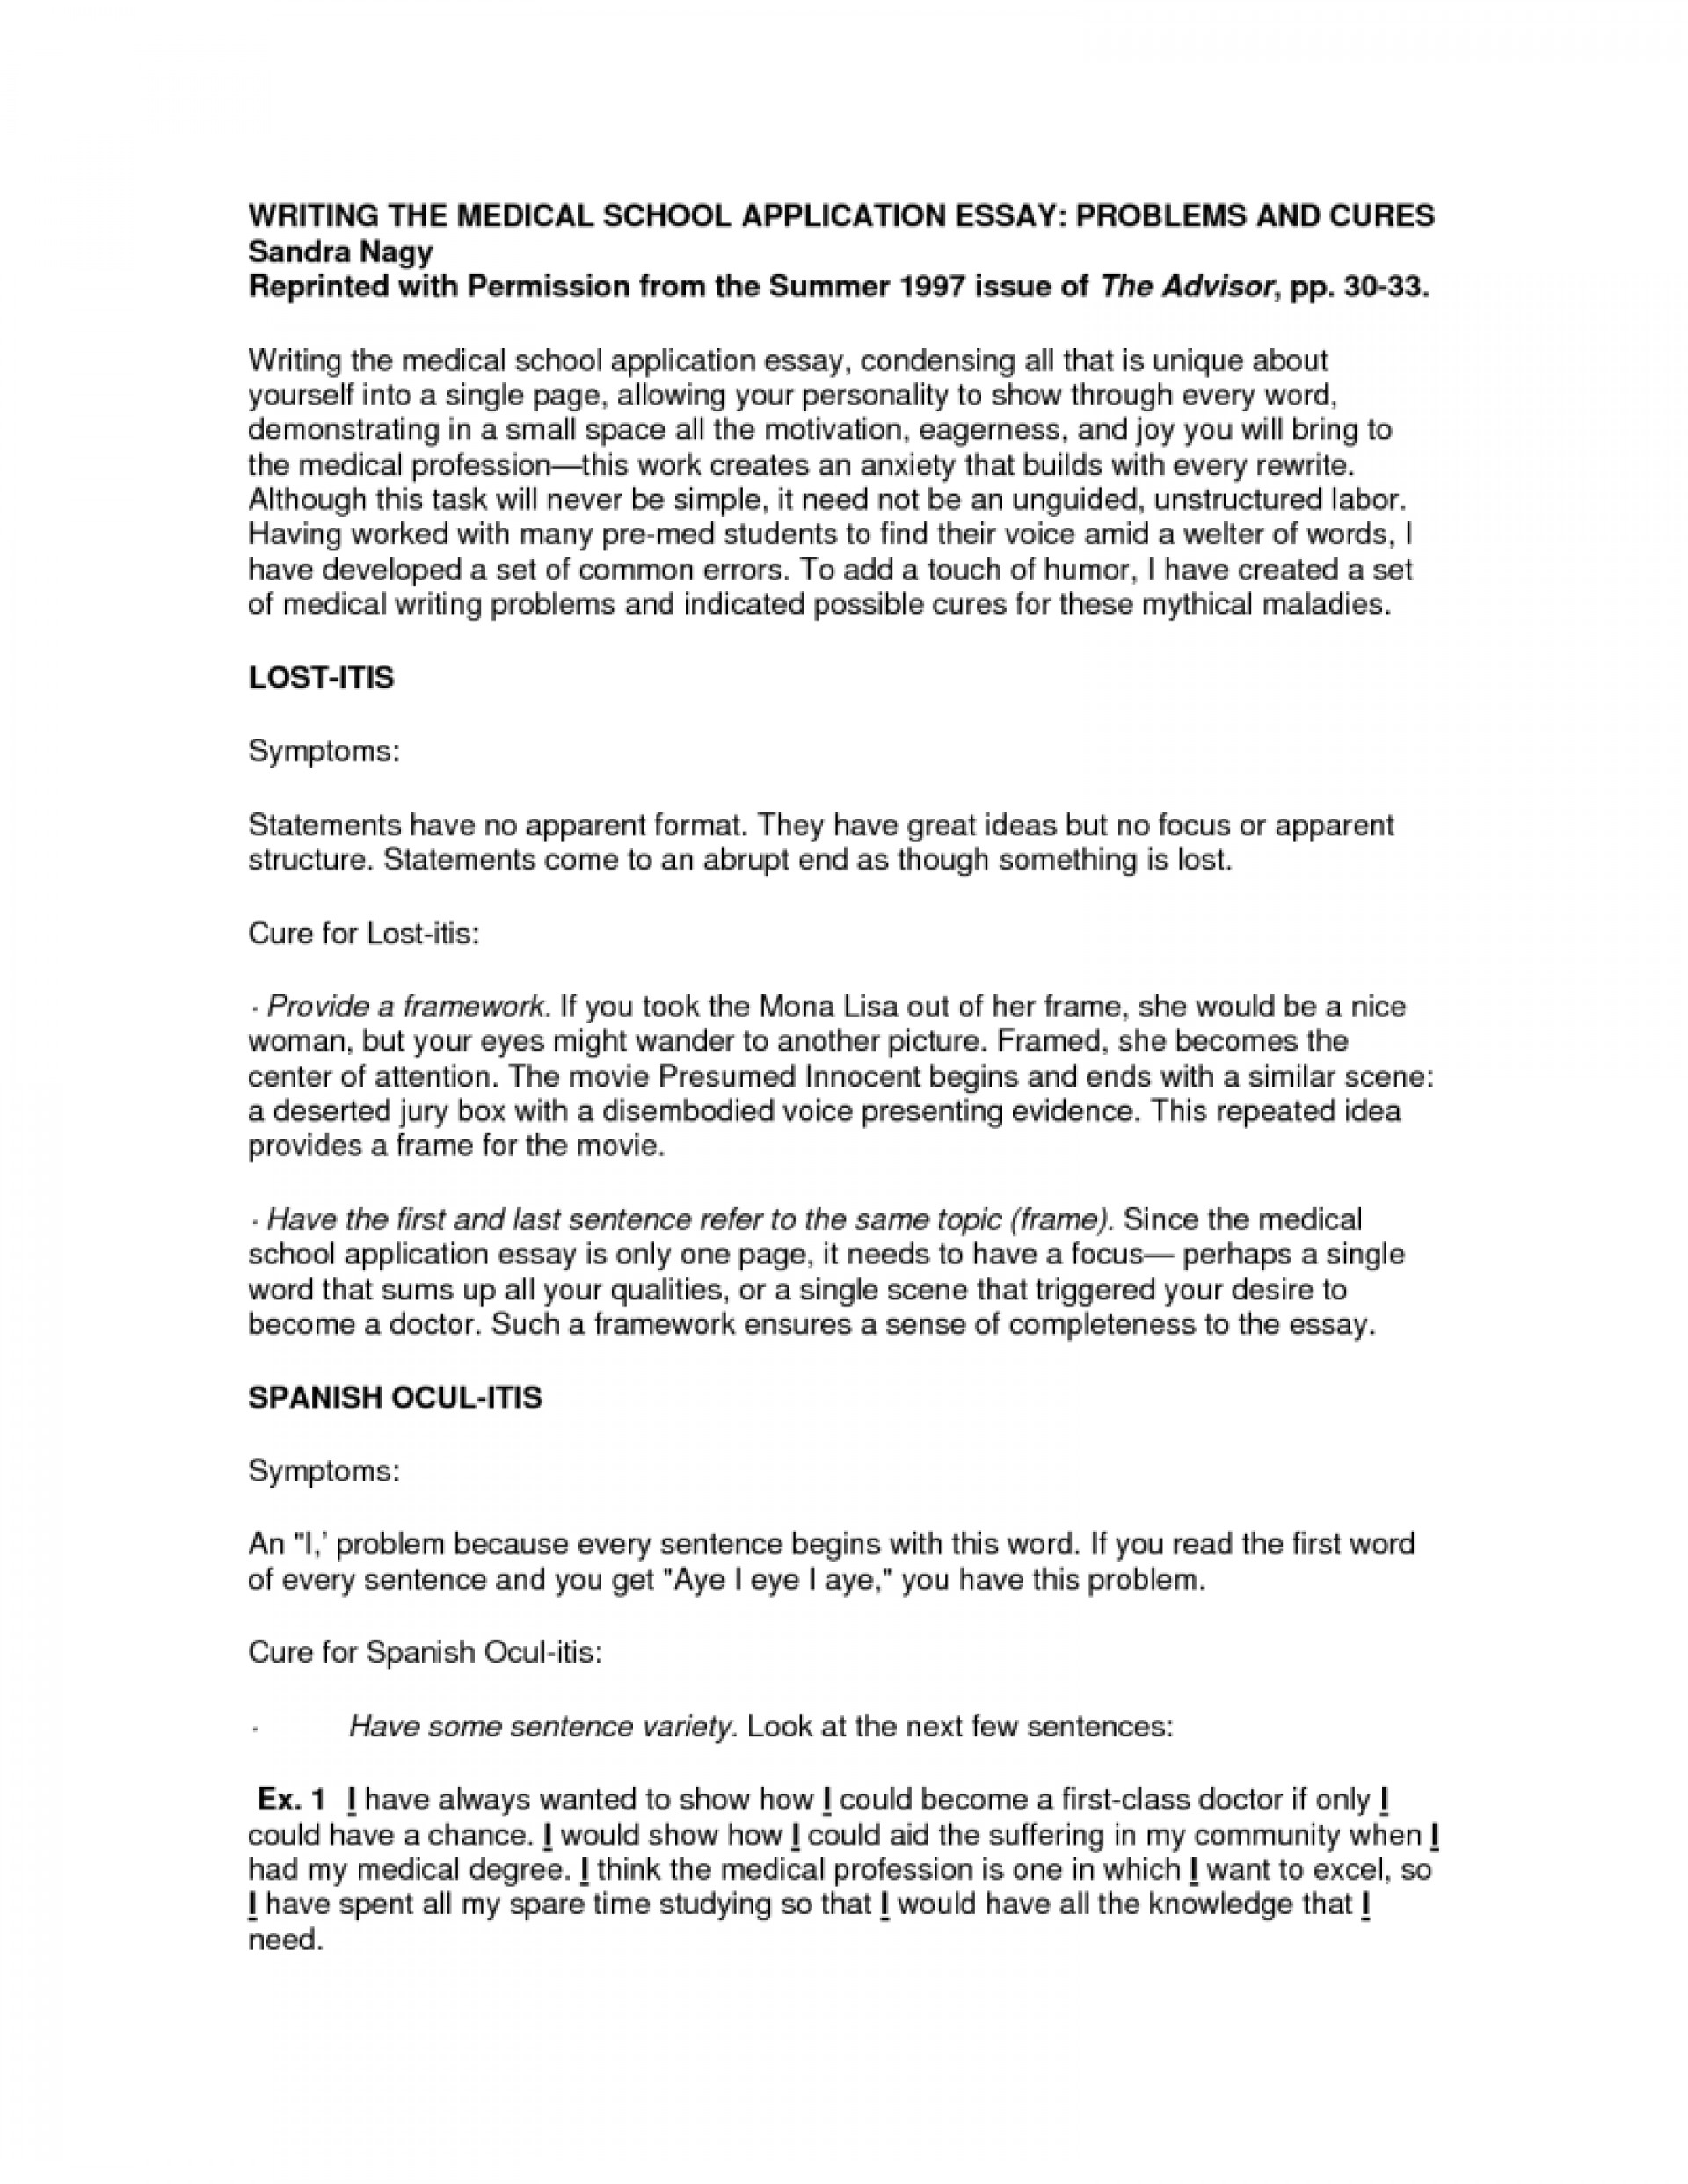 007 Essay Example This I Believe Ideas Examples Of Good College Application Essays On Compare And Contrast Template Qdbqo Topics Outstanding 1920